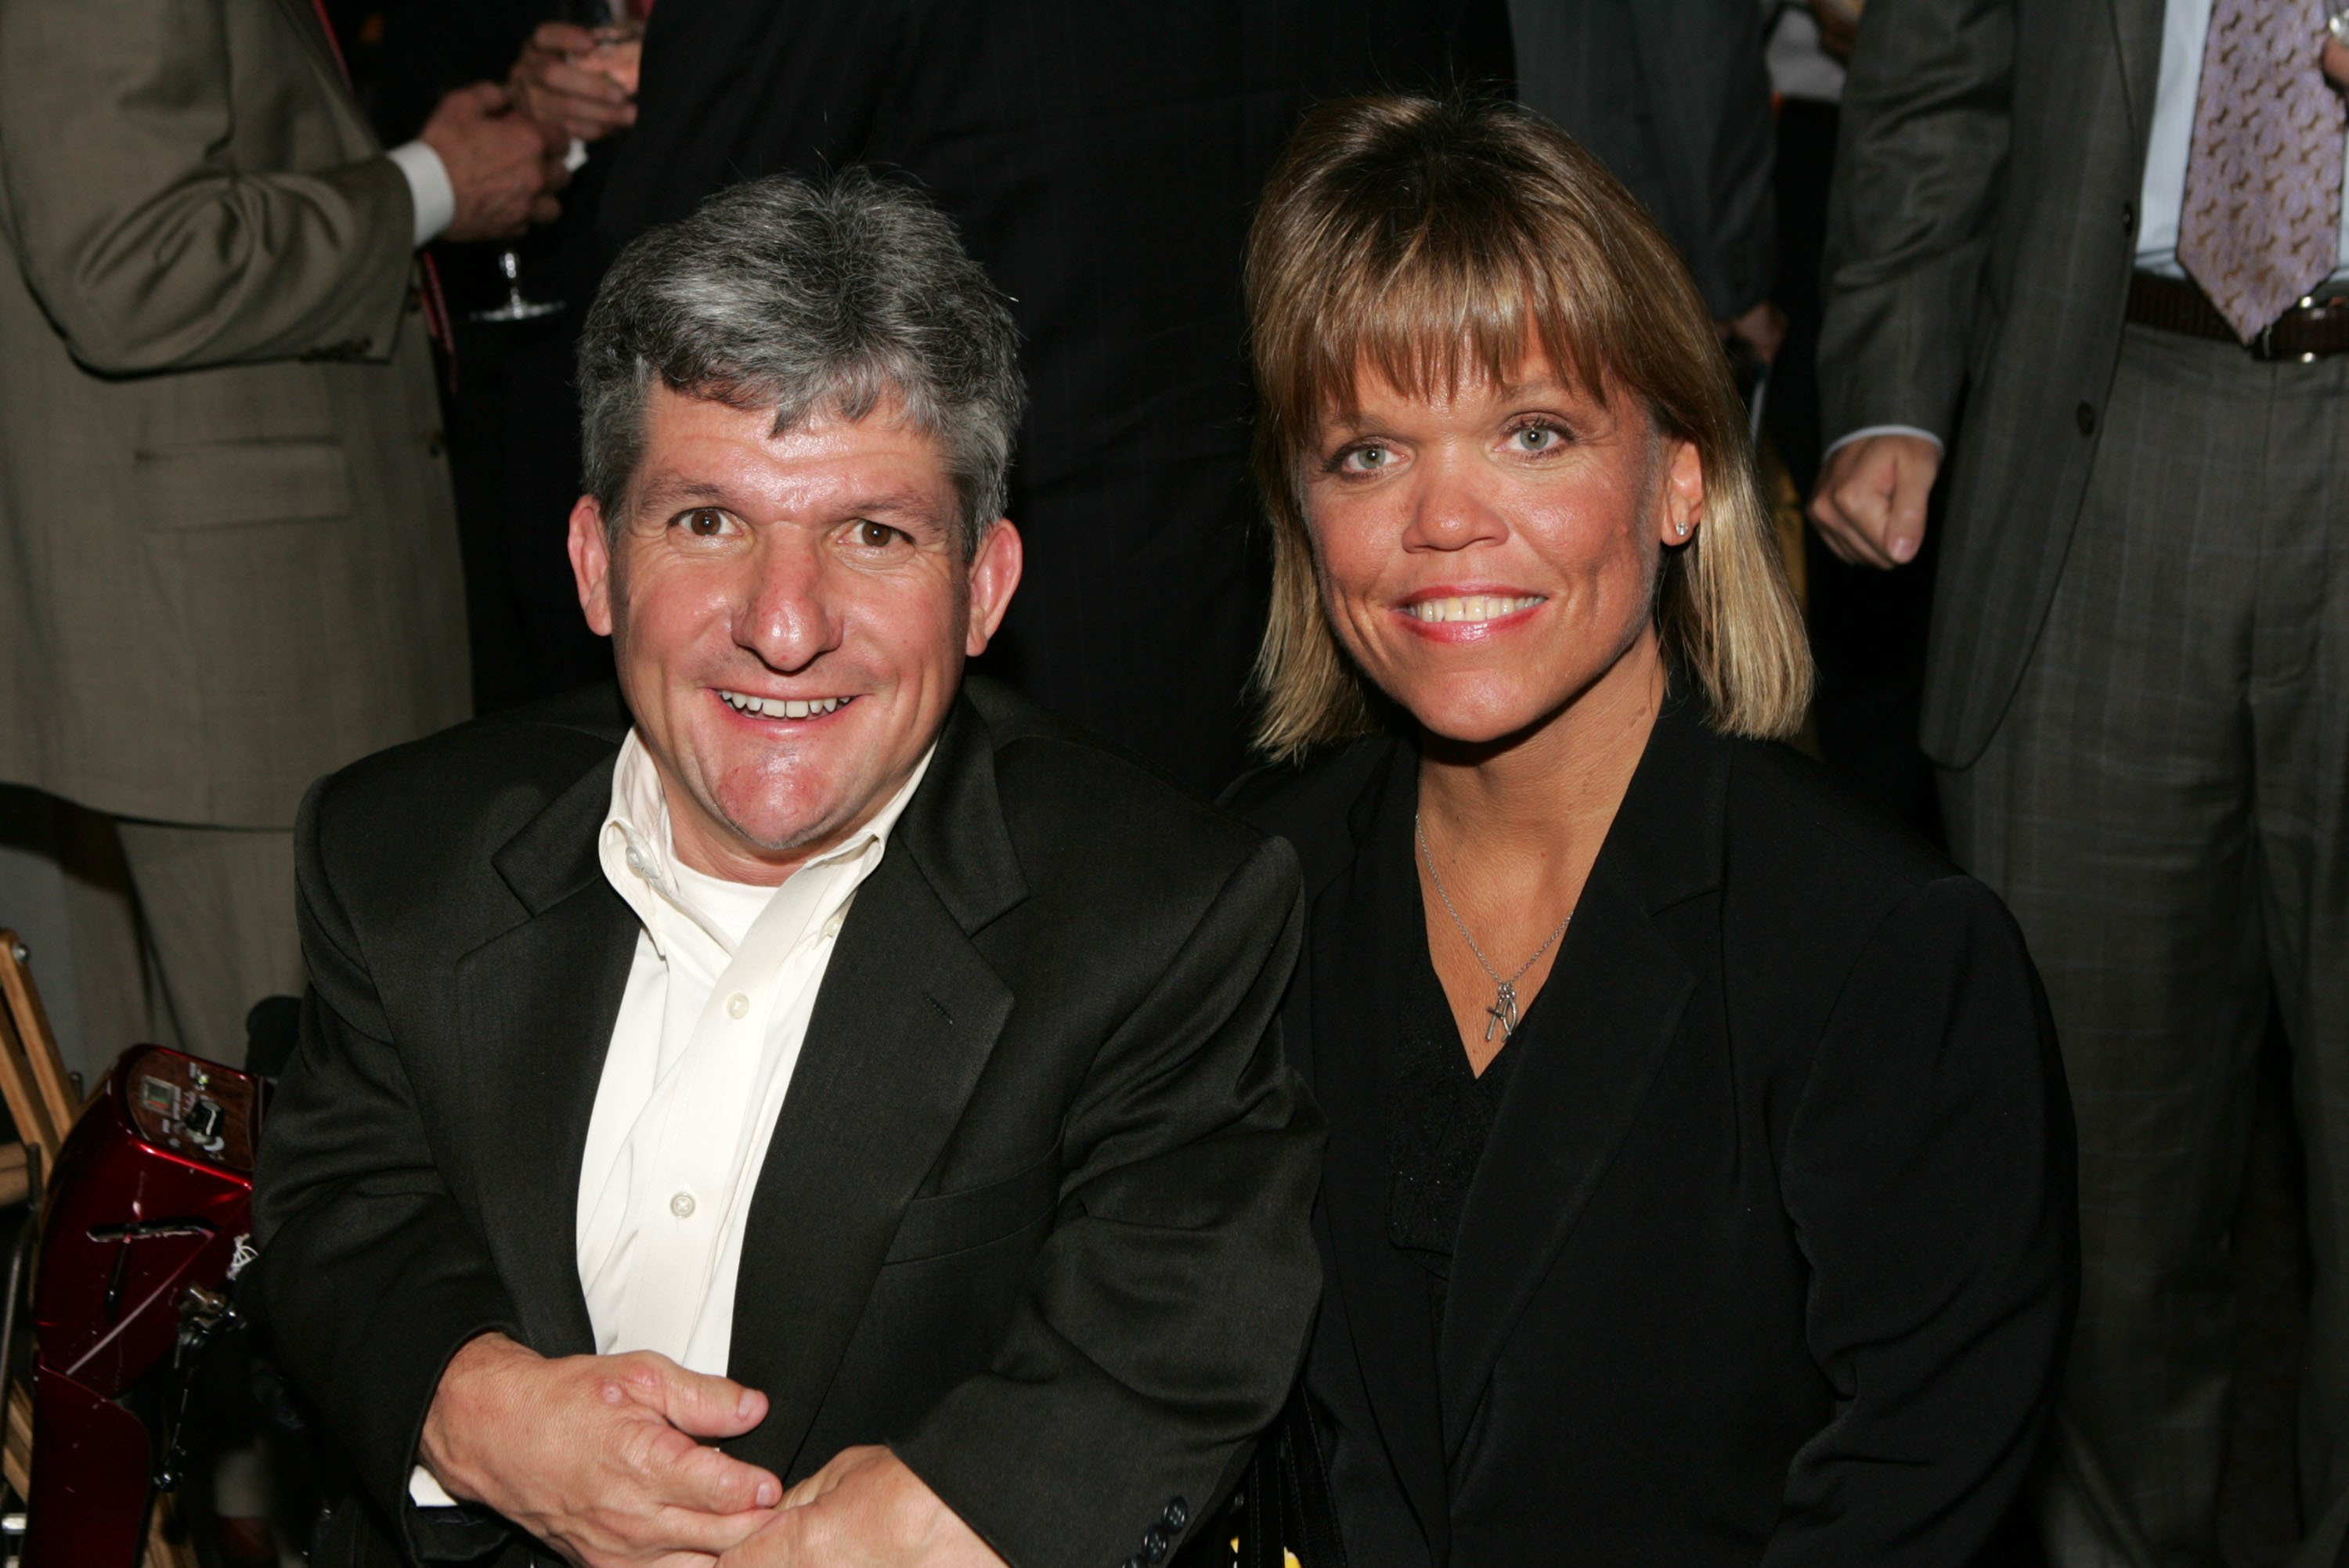 Matt and Amy Roloff attend the Discovery Upfront Presentation on April 23, 2008 in New York City.| Photo: Getty Images